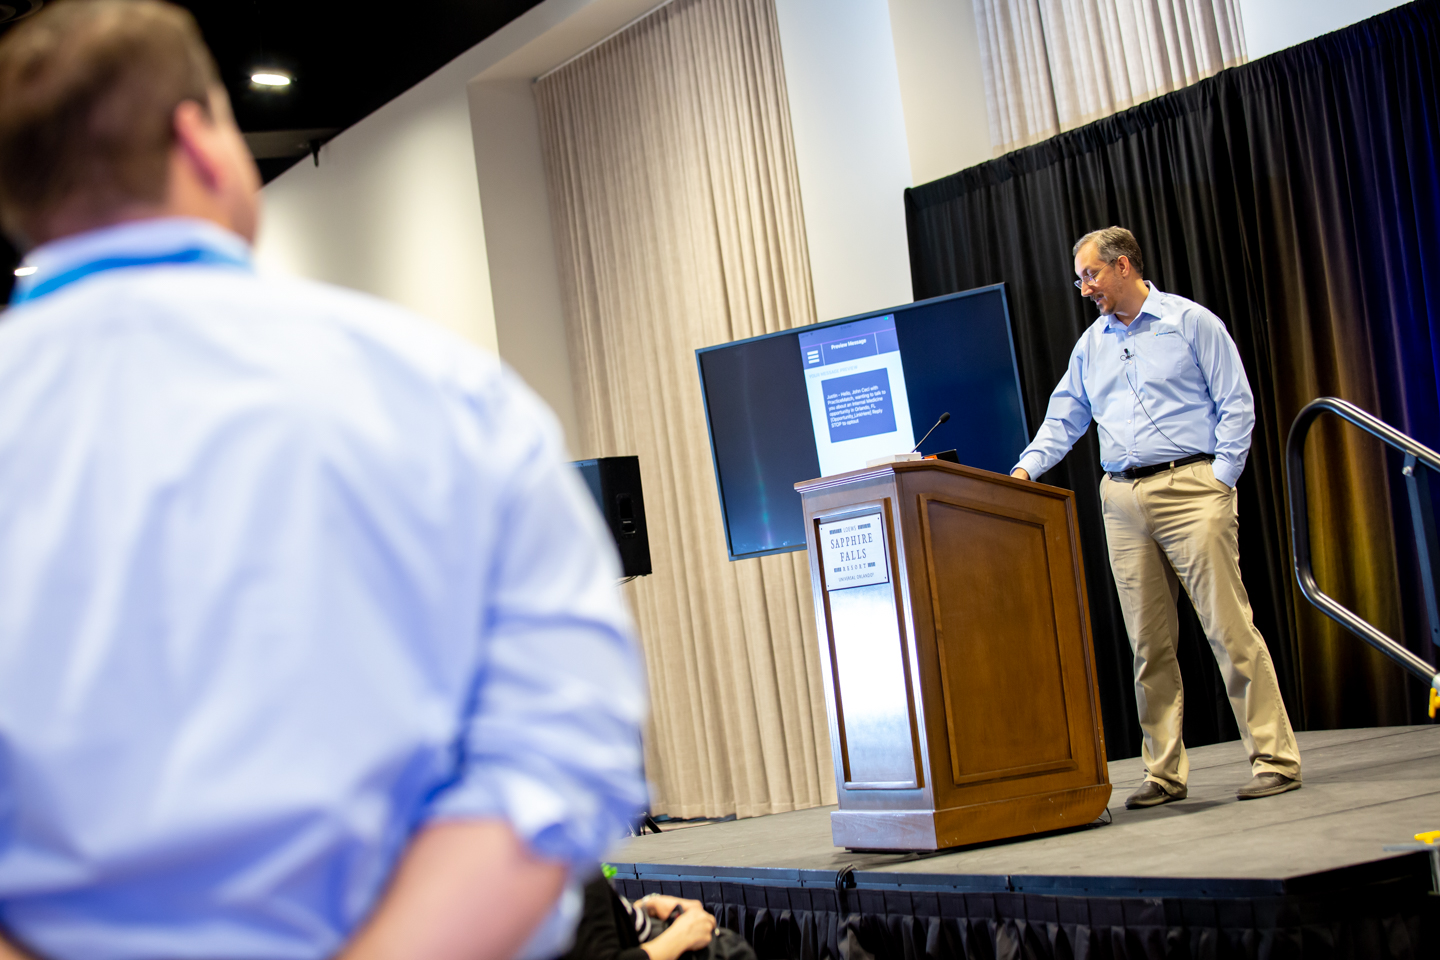 AAPPR-Conference-Expo-Professional-Event-Photography-Photographer-Orlando-presentation-attendees-27.jpg